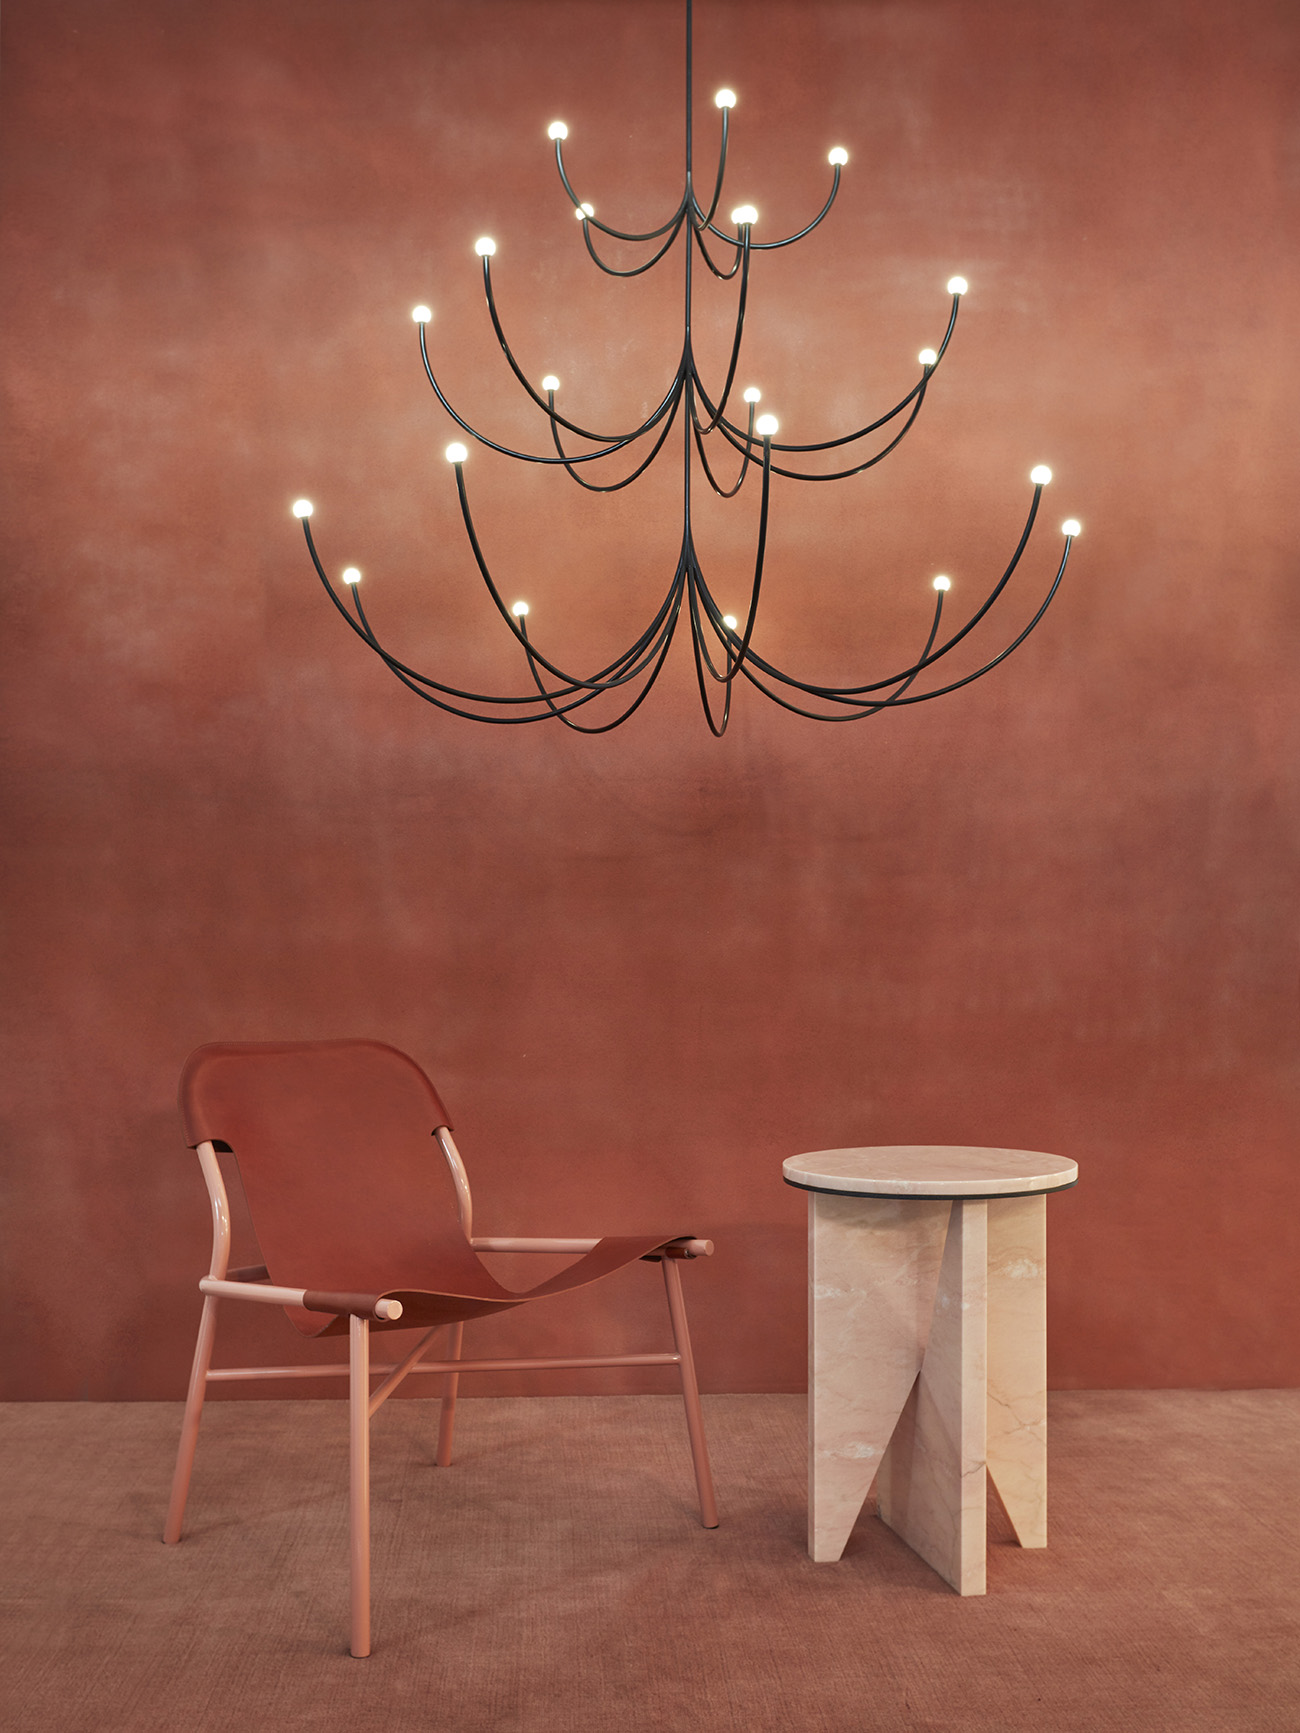 Matter-Made-Arca-Chandelier-Ohayo-Lounge-Affordances-Table.jpg